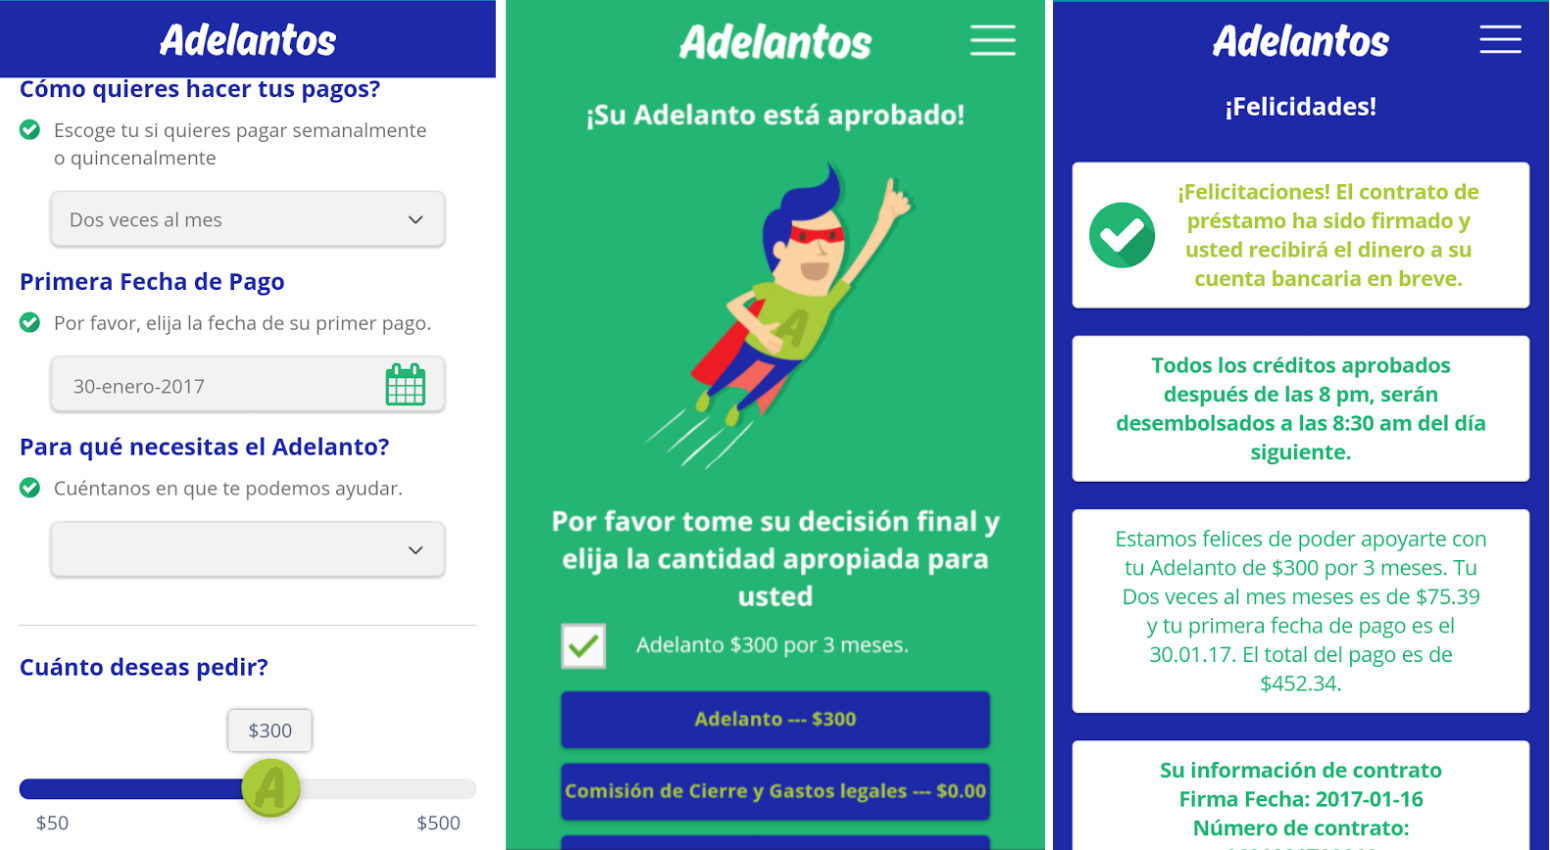 adelantos screenshots